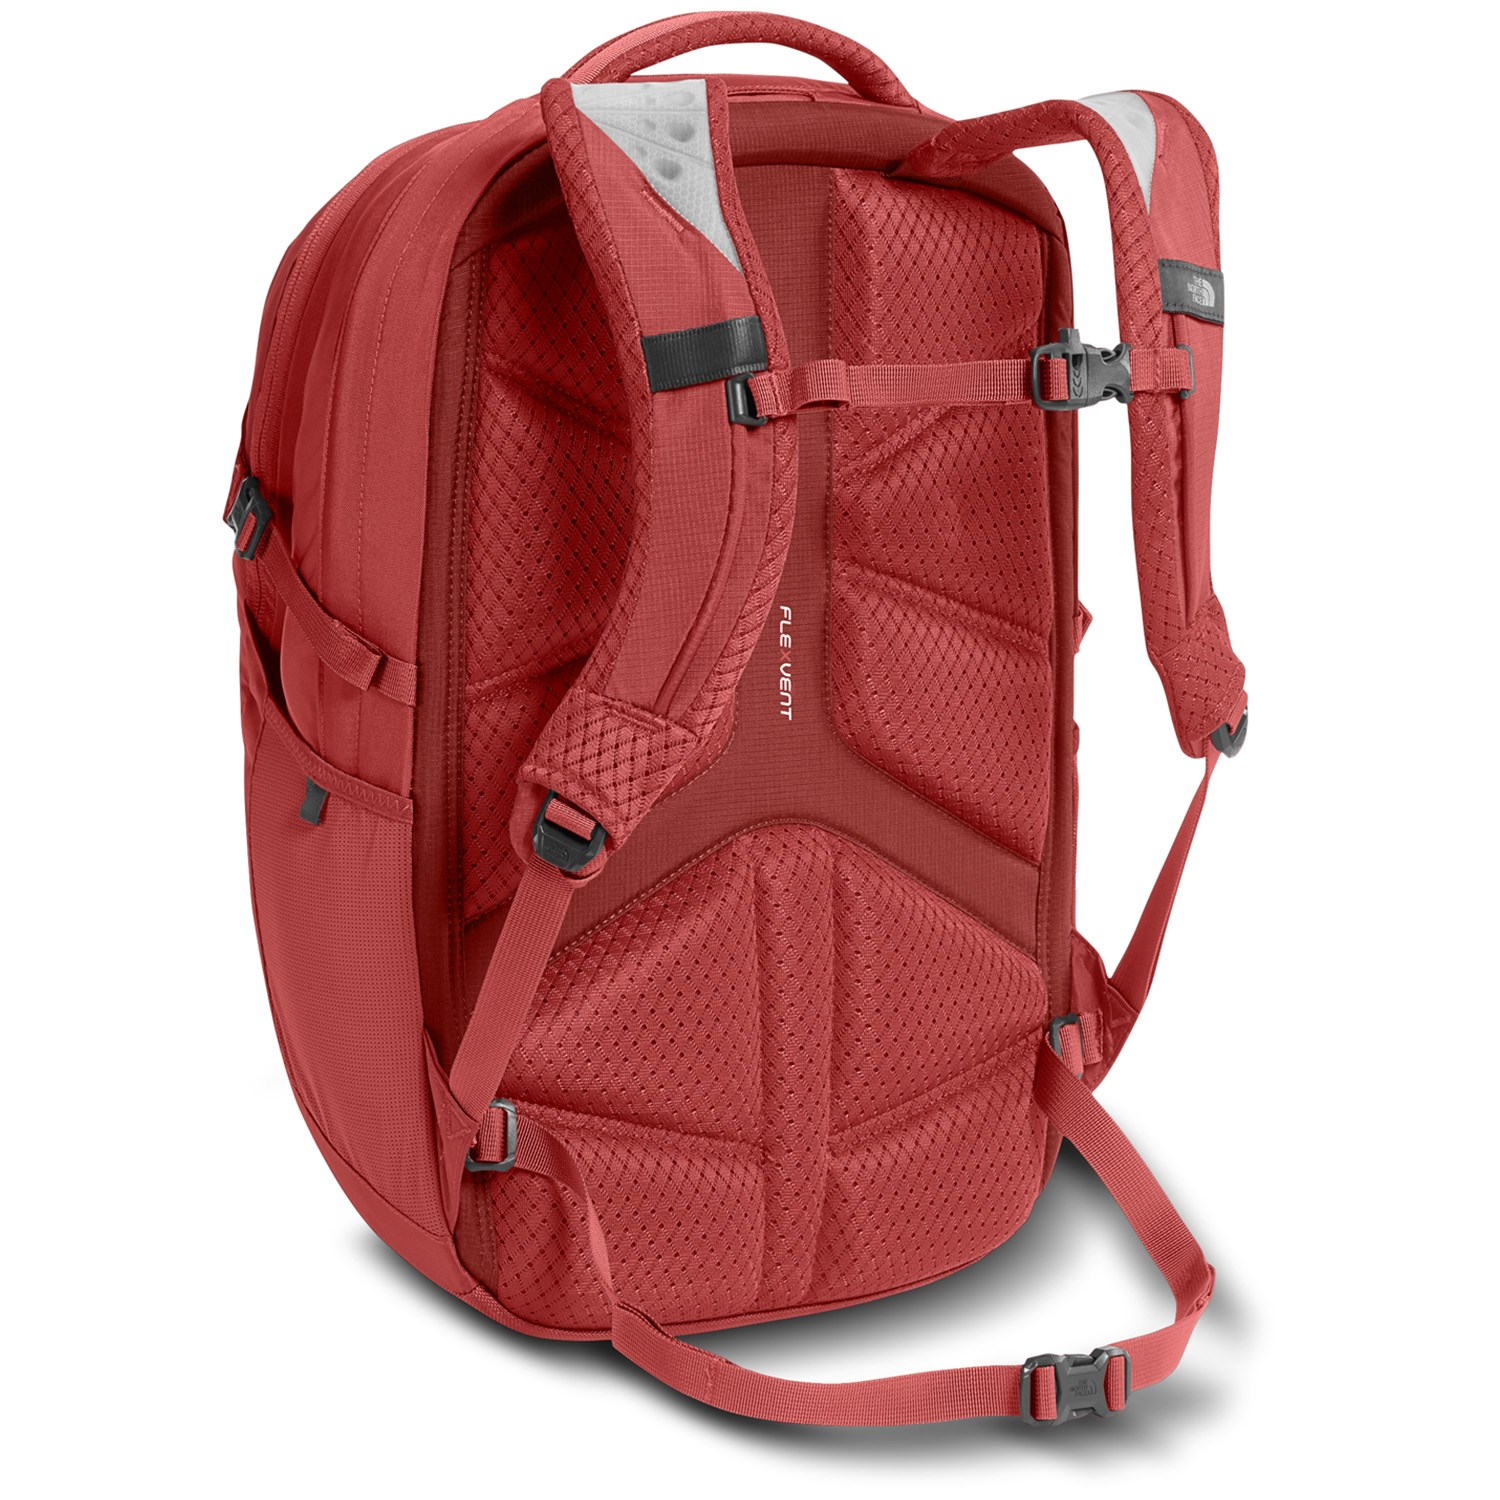 f4cabea432ae4 The North Face Borealis Backpack - Women s